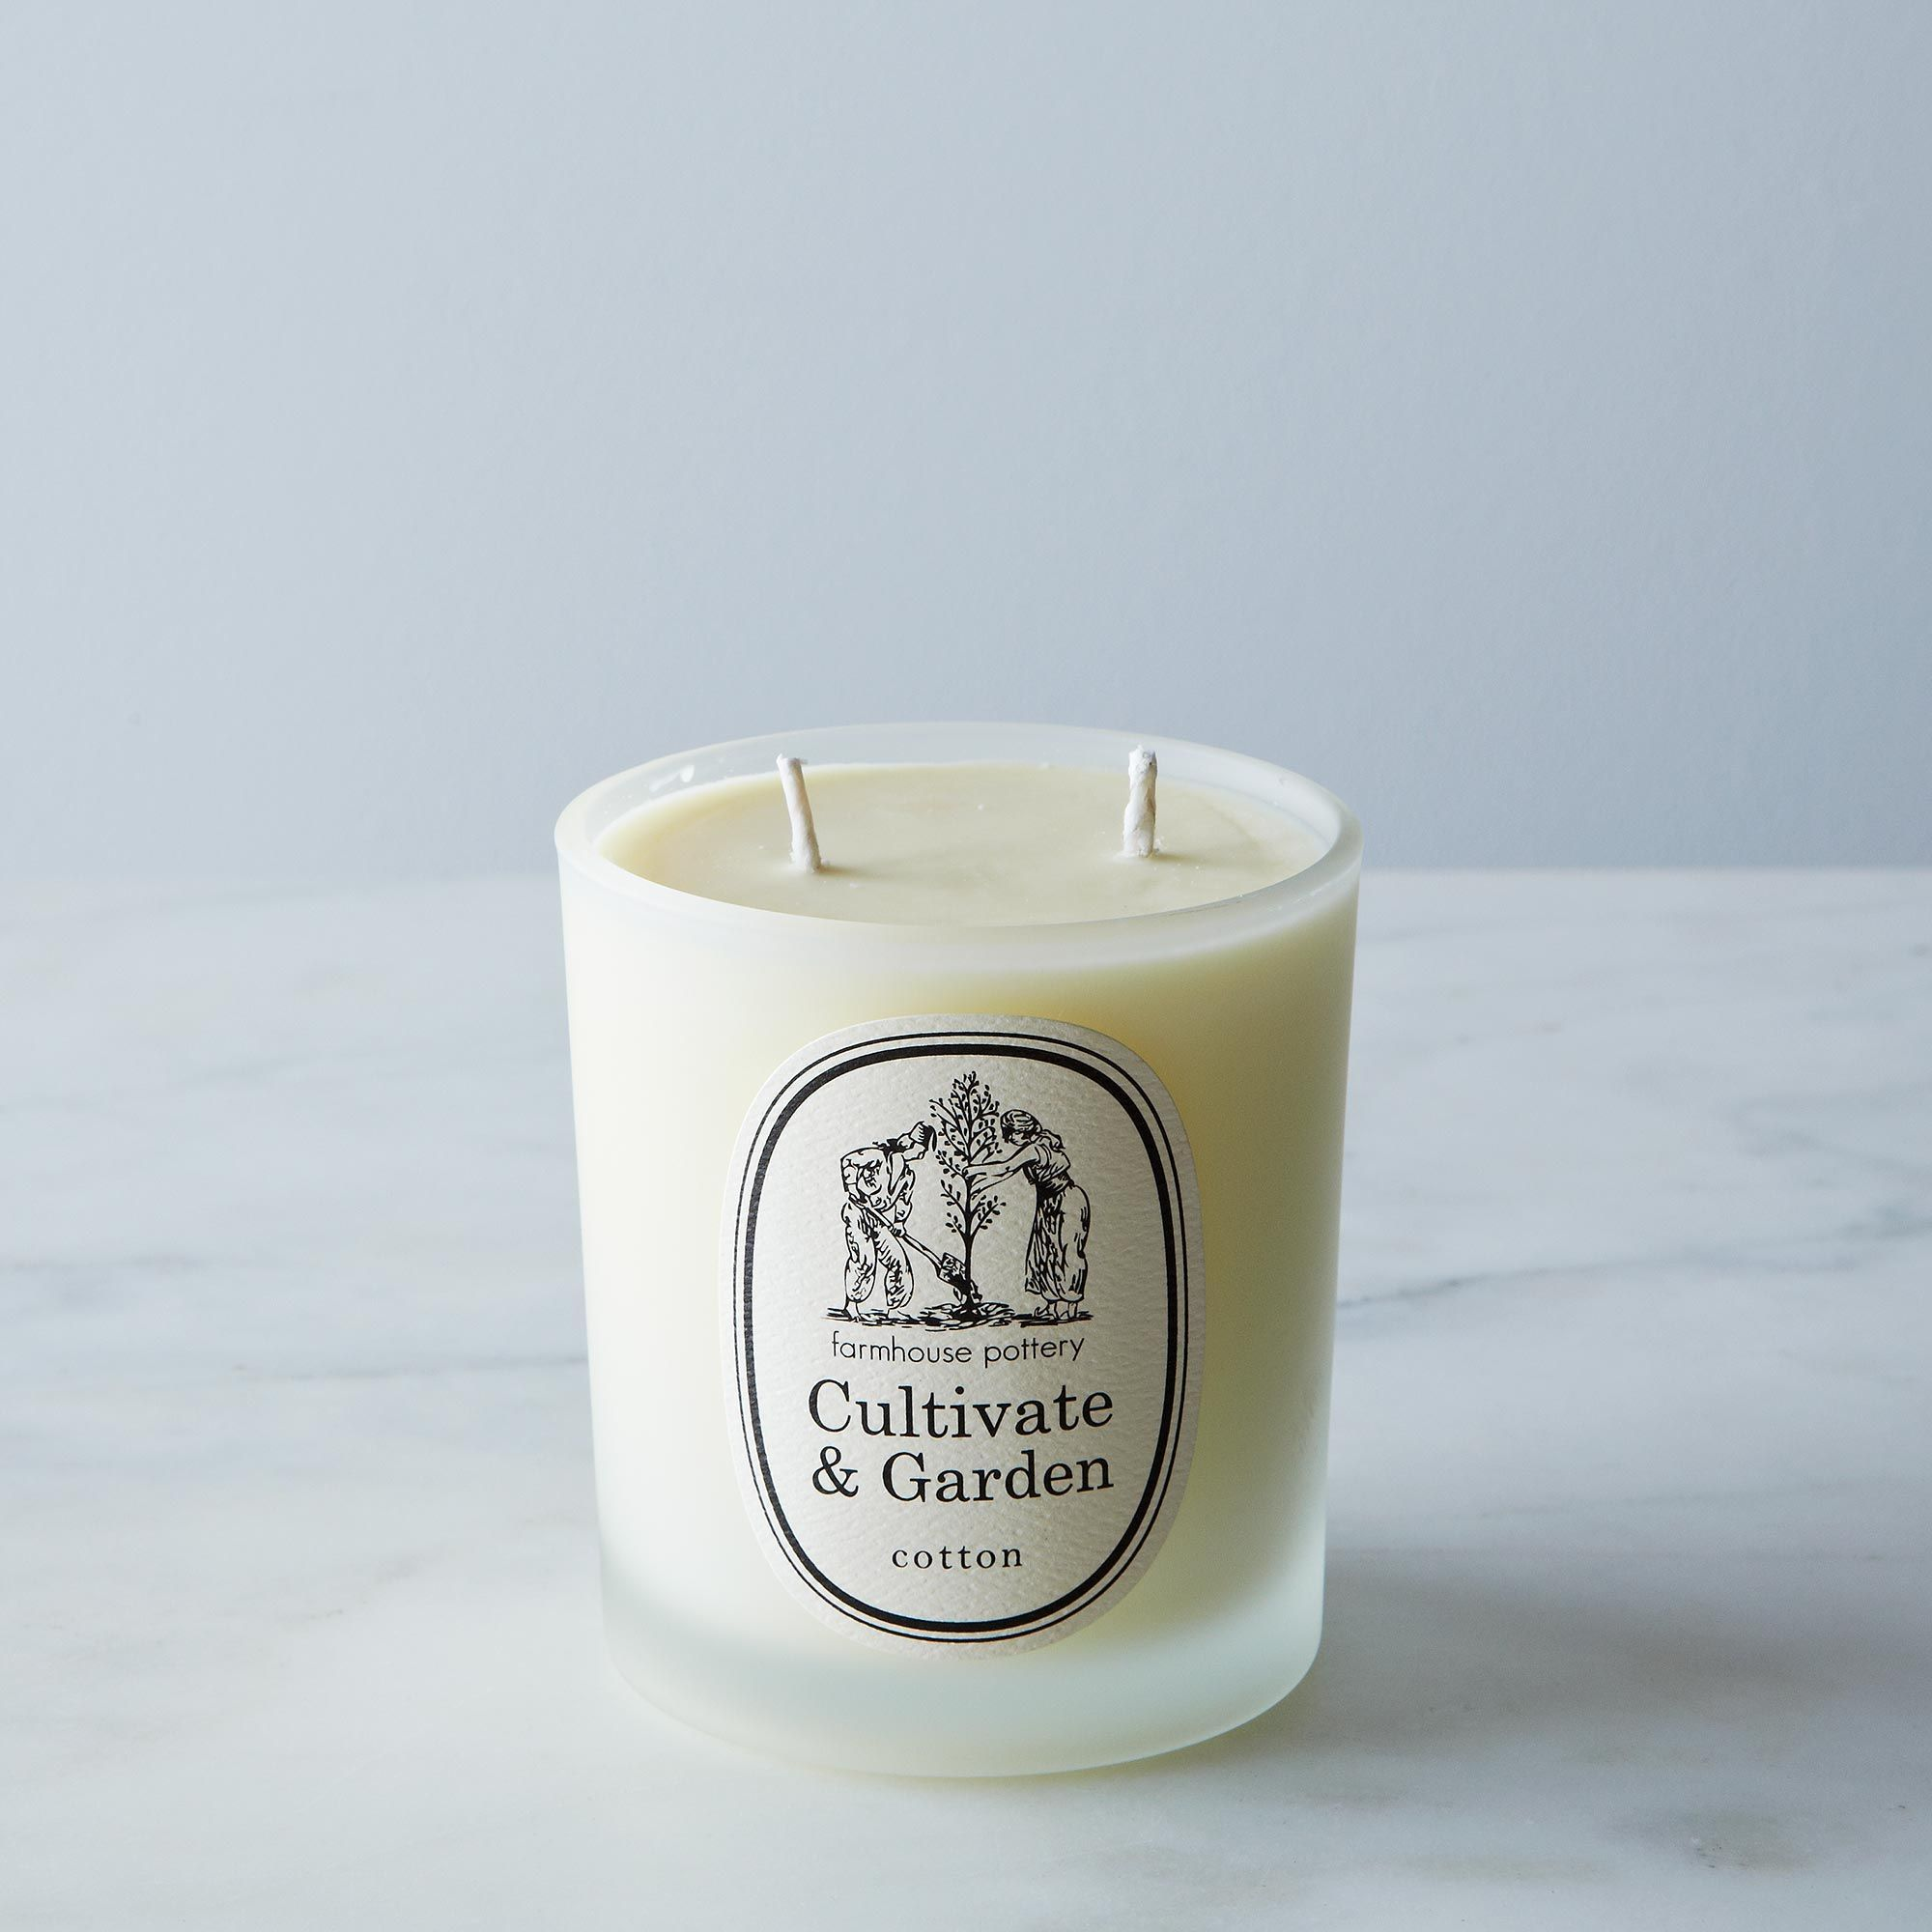 9677a8d0 a0f5 11e5 a190 0ef7535729df  2013 1118 farmhouse pottery cultivate candle cotton 004